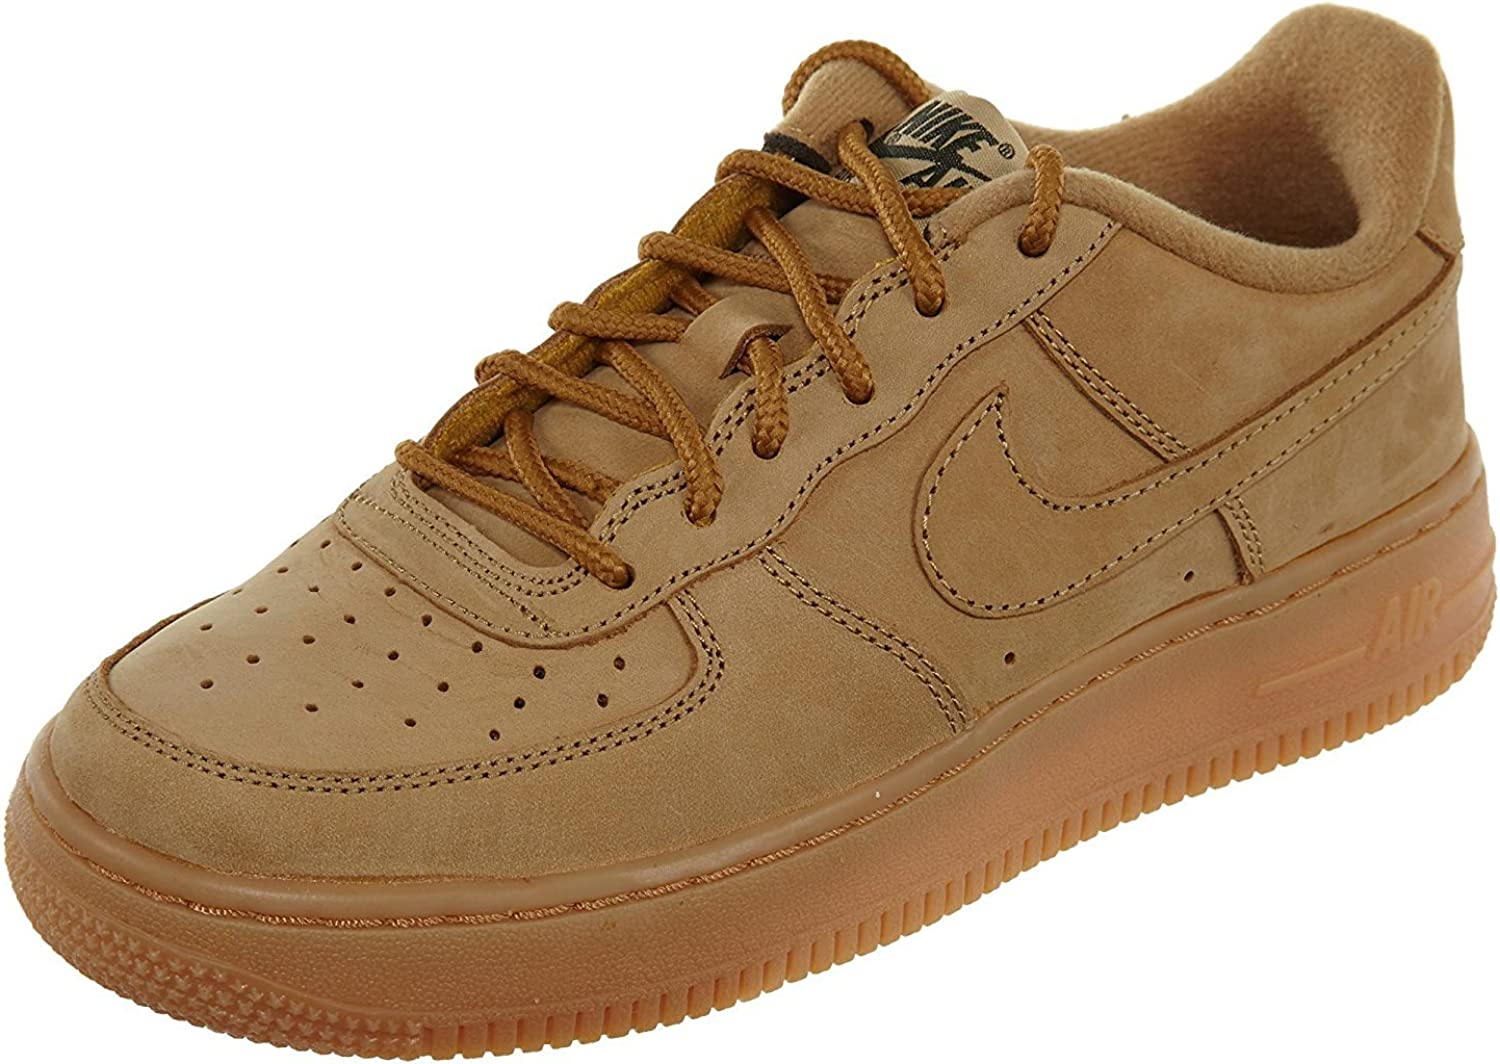 completar Favor ajo  Nike Air Force 1 Winter Premium GS Kids Trainers Wheat - 4 UK:  Amazon.co.uk: Shoes & Bags